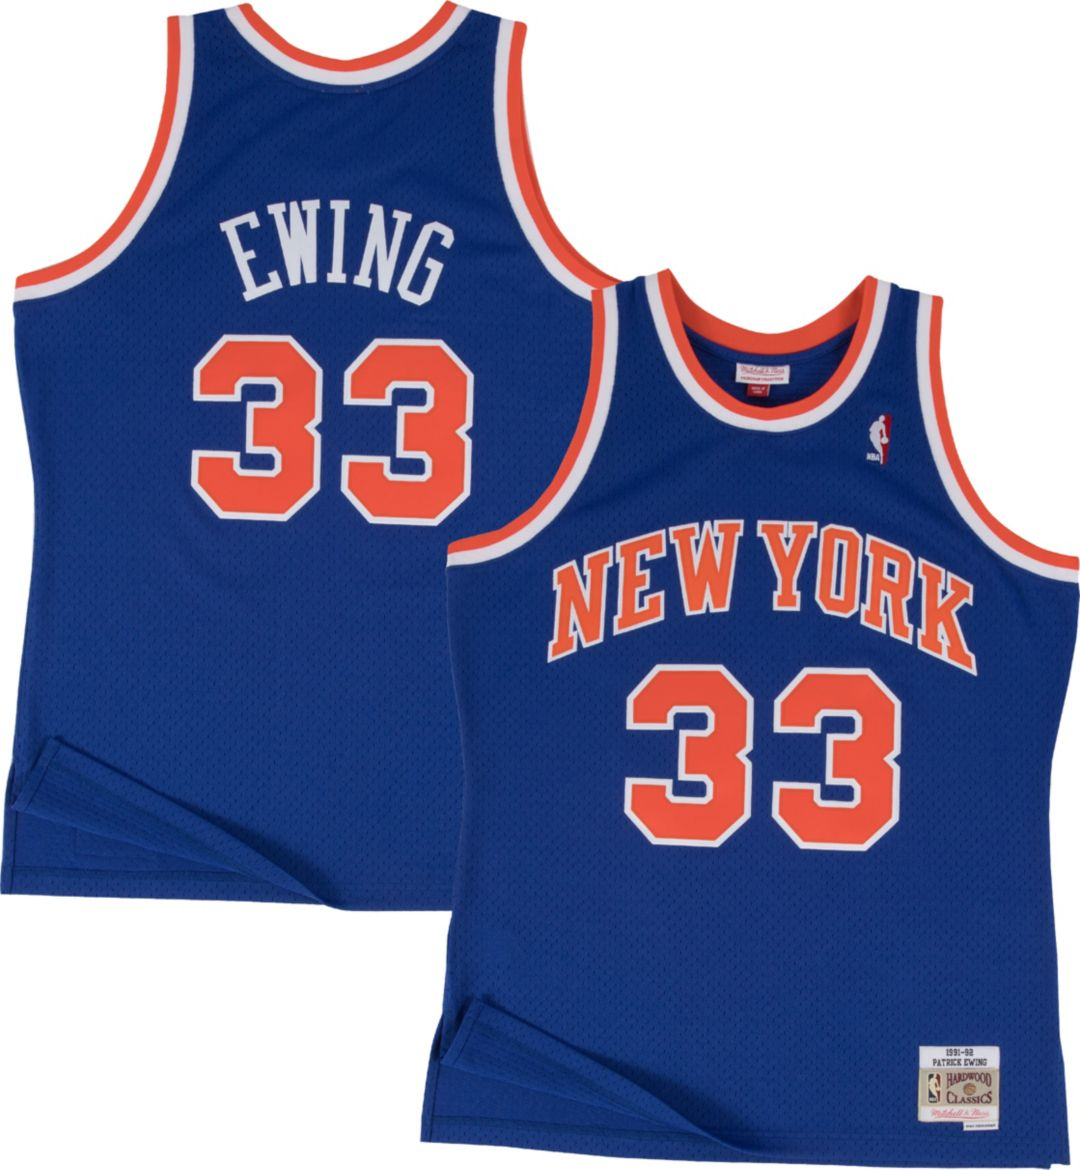 detailed look 14de8 5318f Mitchell & Ness Men's New York Knicks Patrick Ewing #33 Hardwood Classics  Swingman Jersey